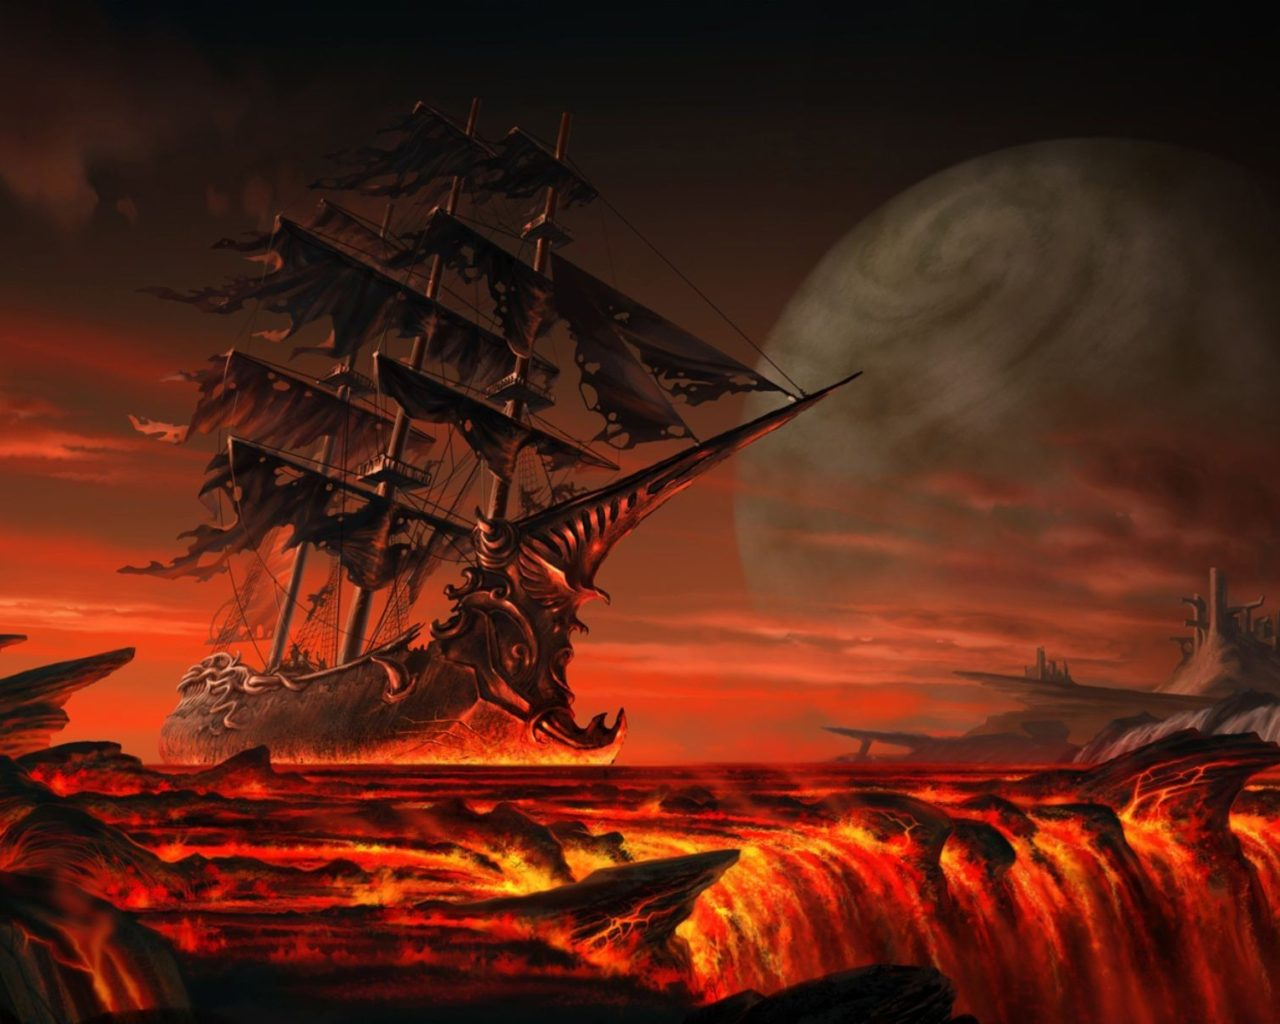 Hd 3d Wallpaper For Laptop Free Download Pirate Ship Pirates Lava Ships Fantasy Art 3d Sailing